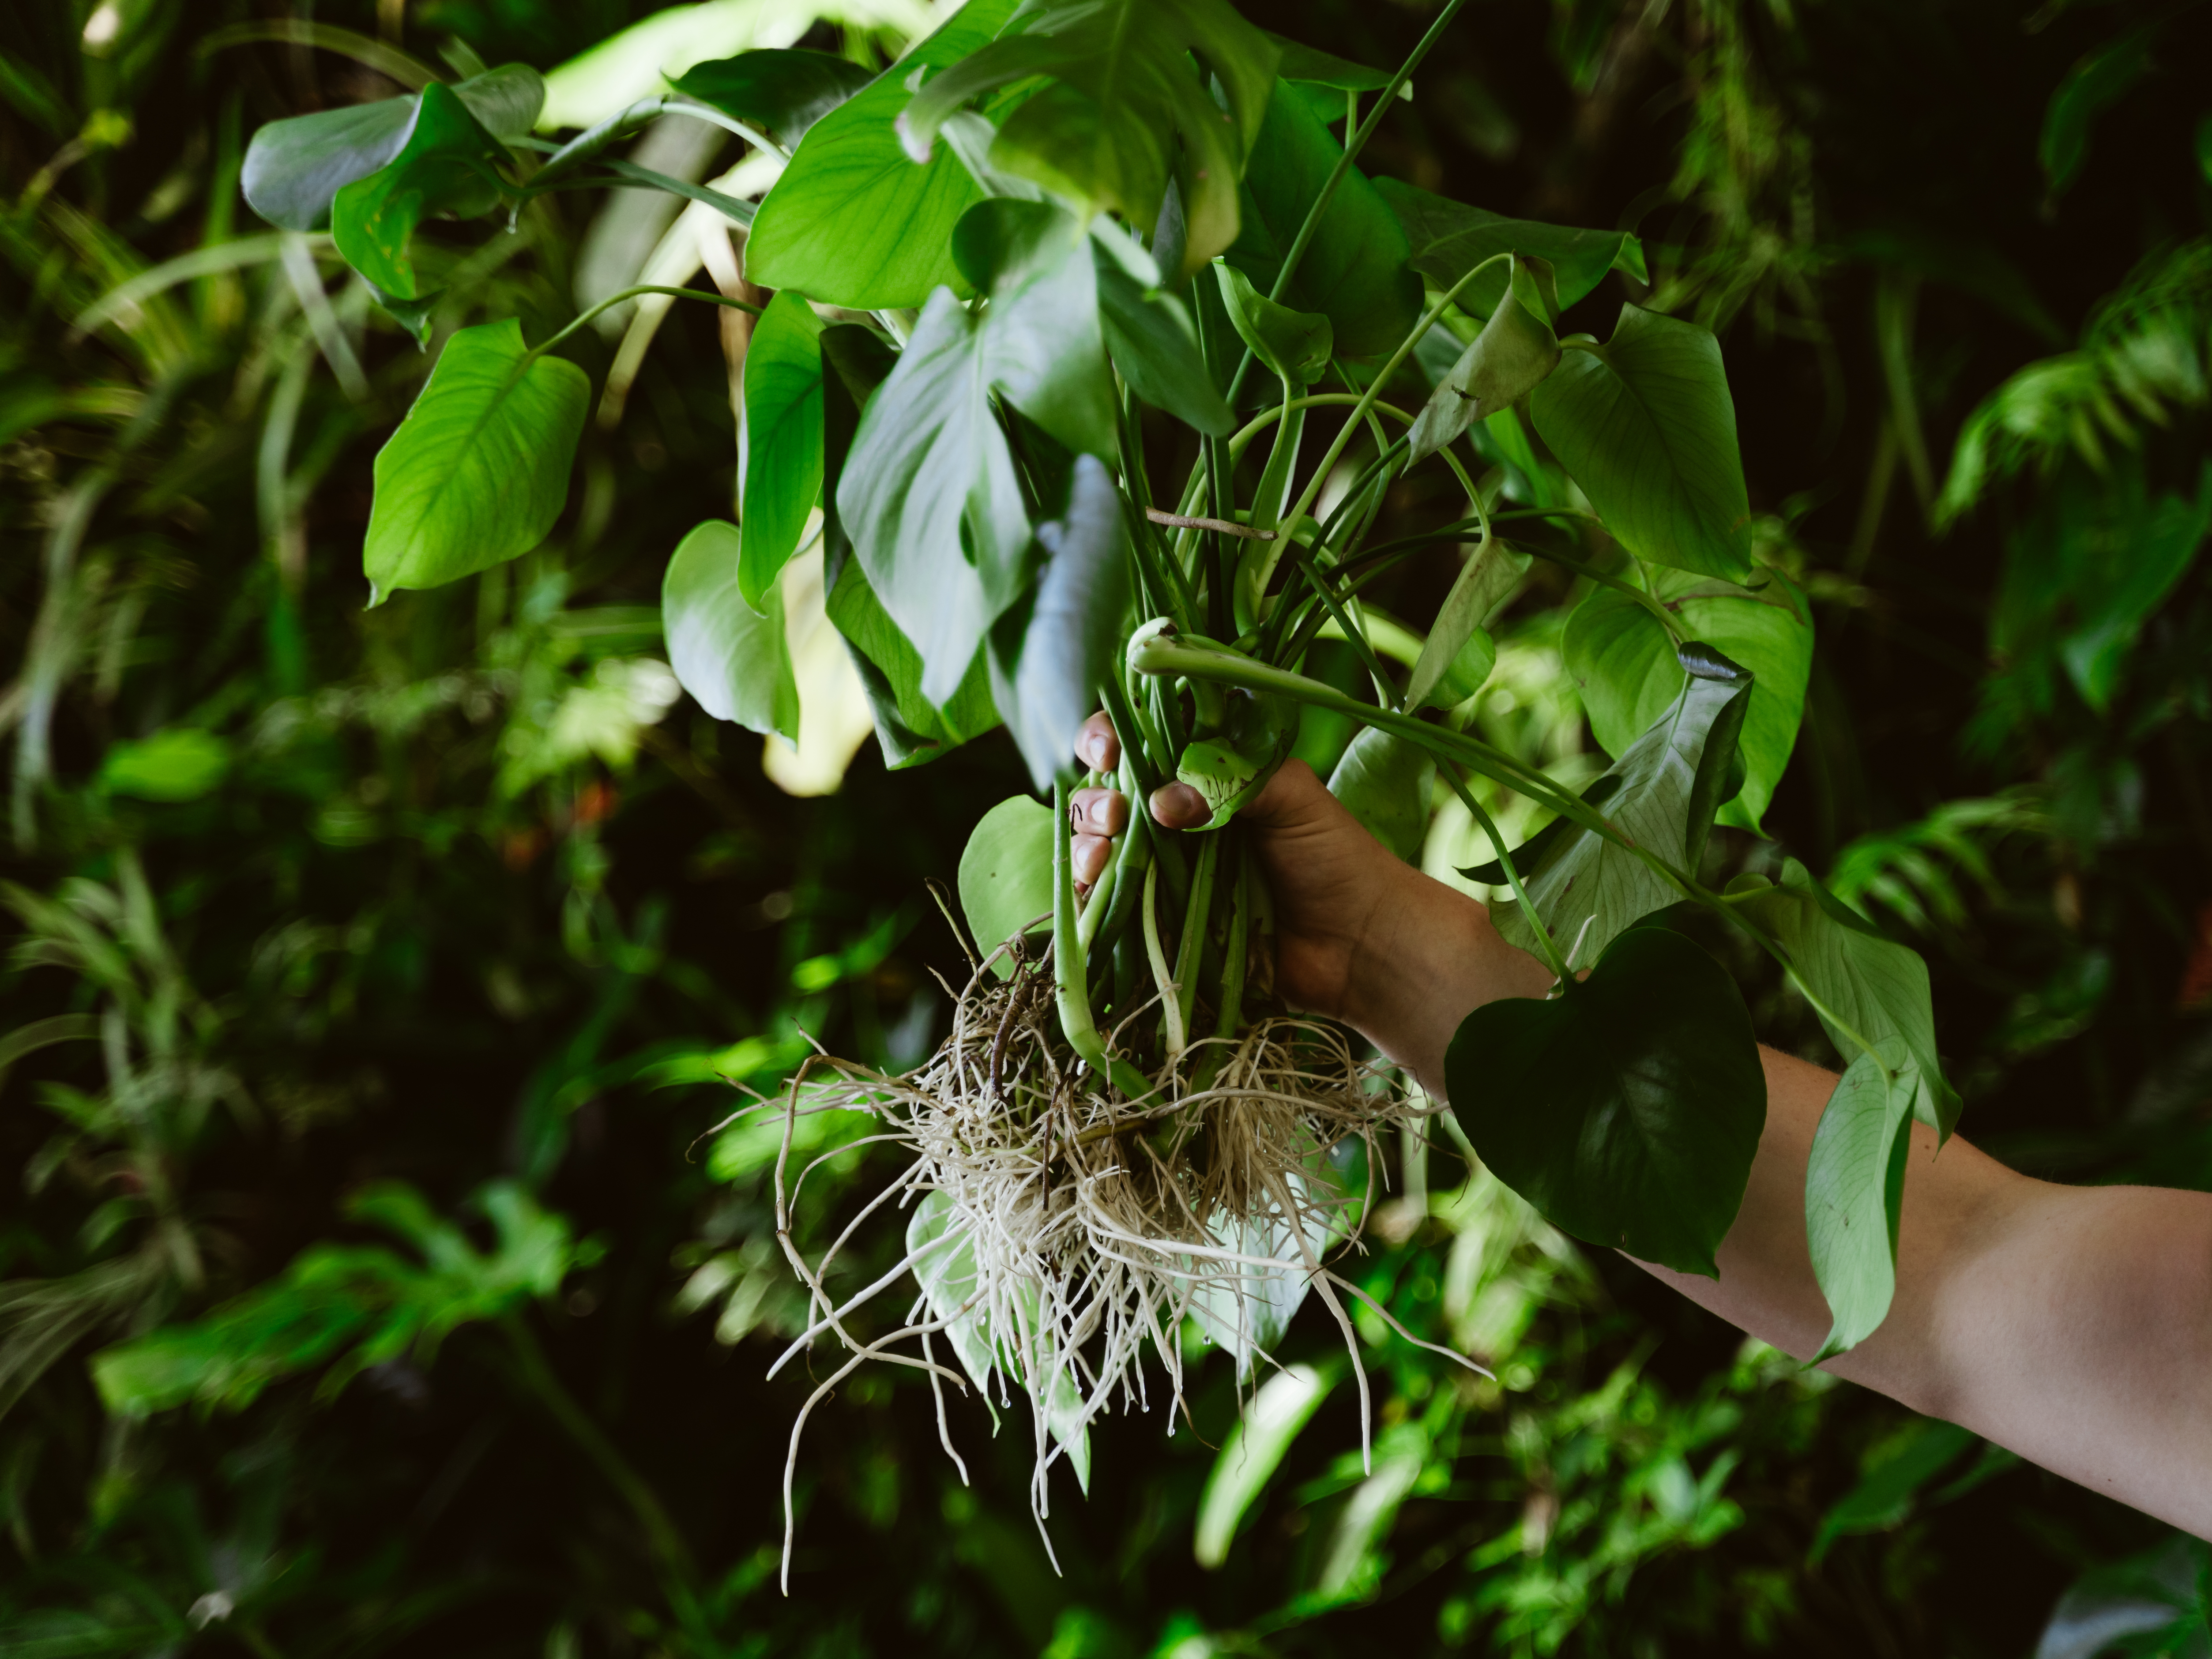 Plant with roots exposed to the air